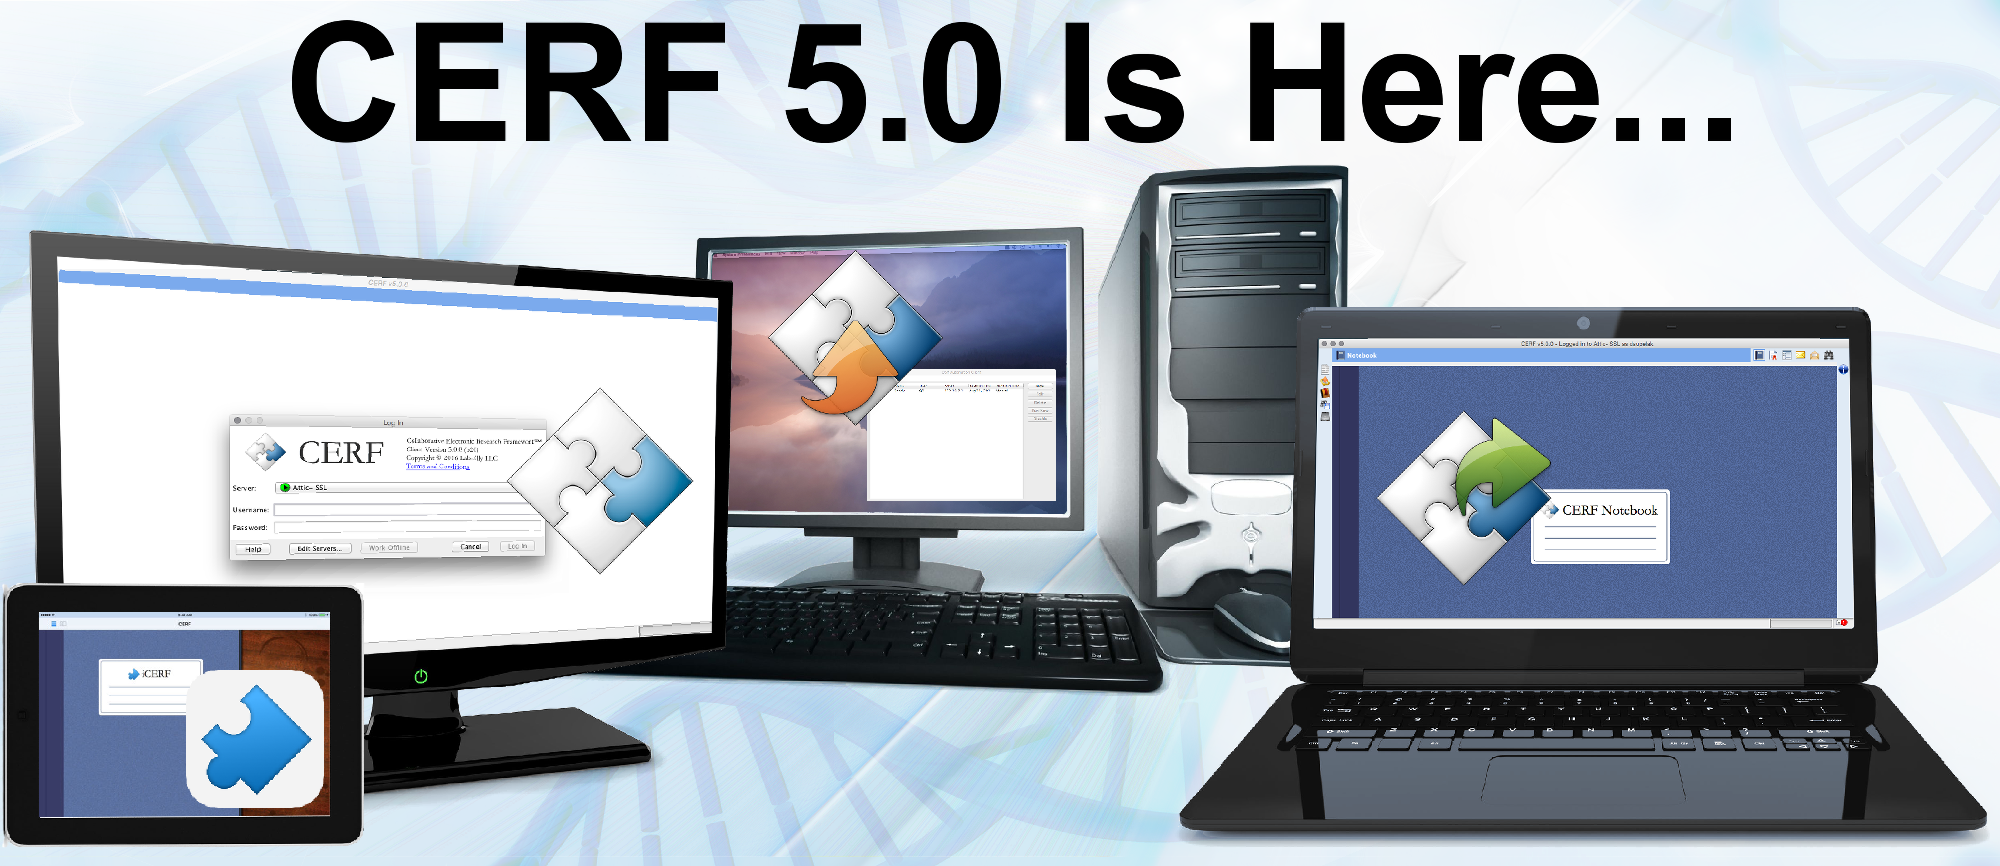 CERF 5.0 is here - Announcing the release of the newest version of CERF ELN